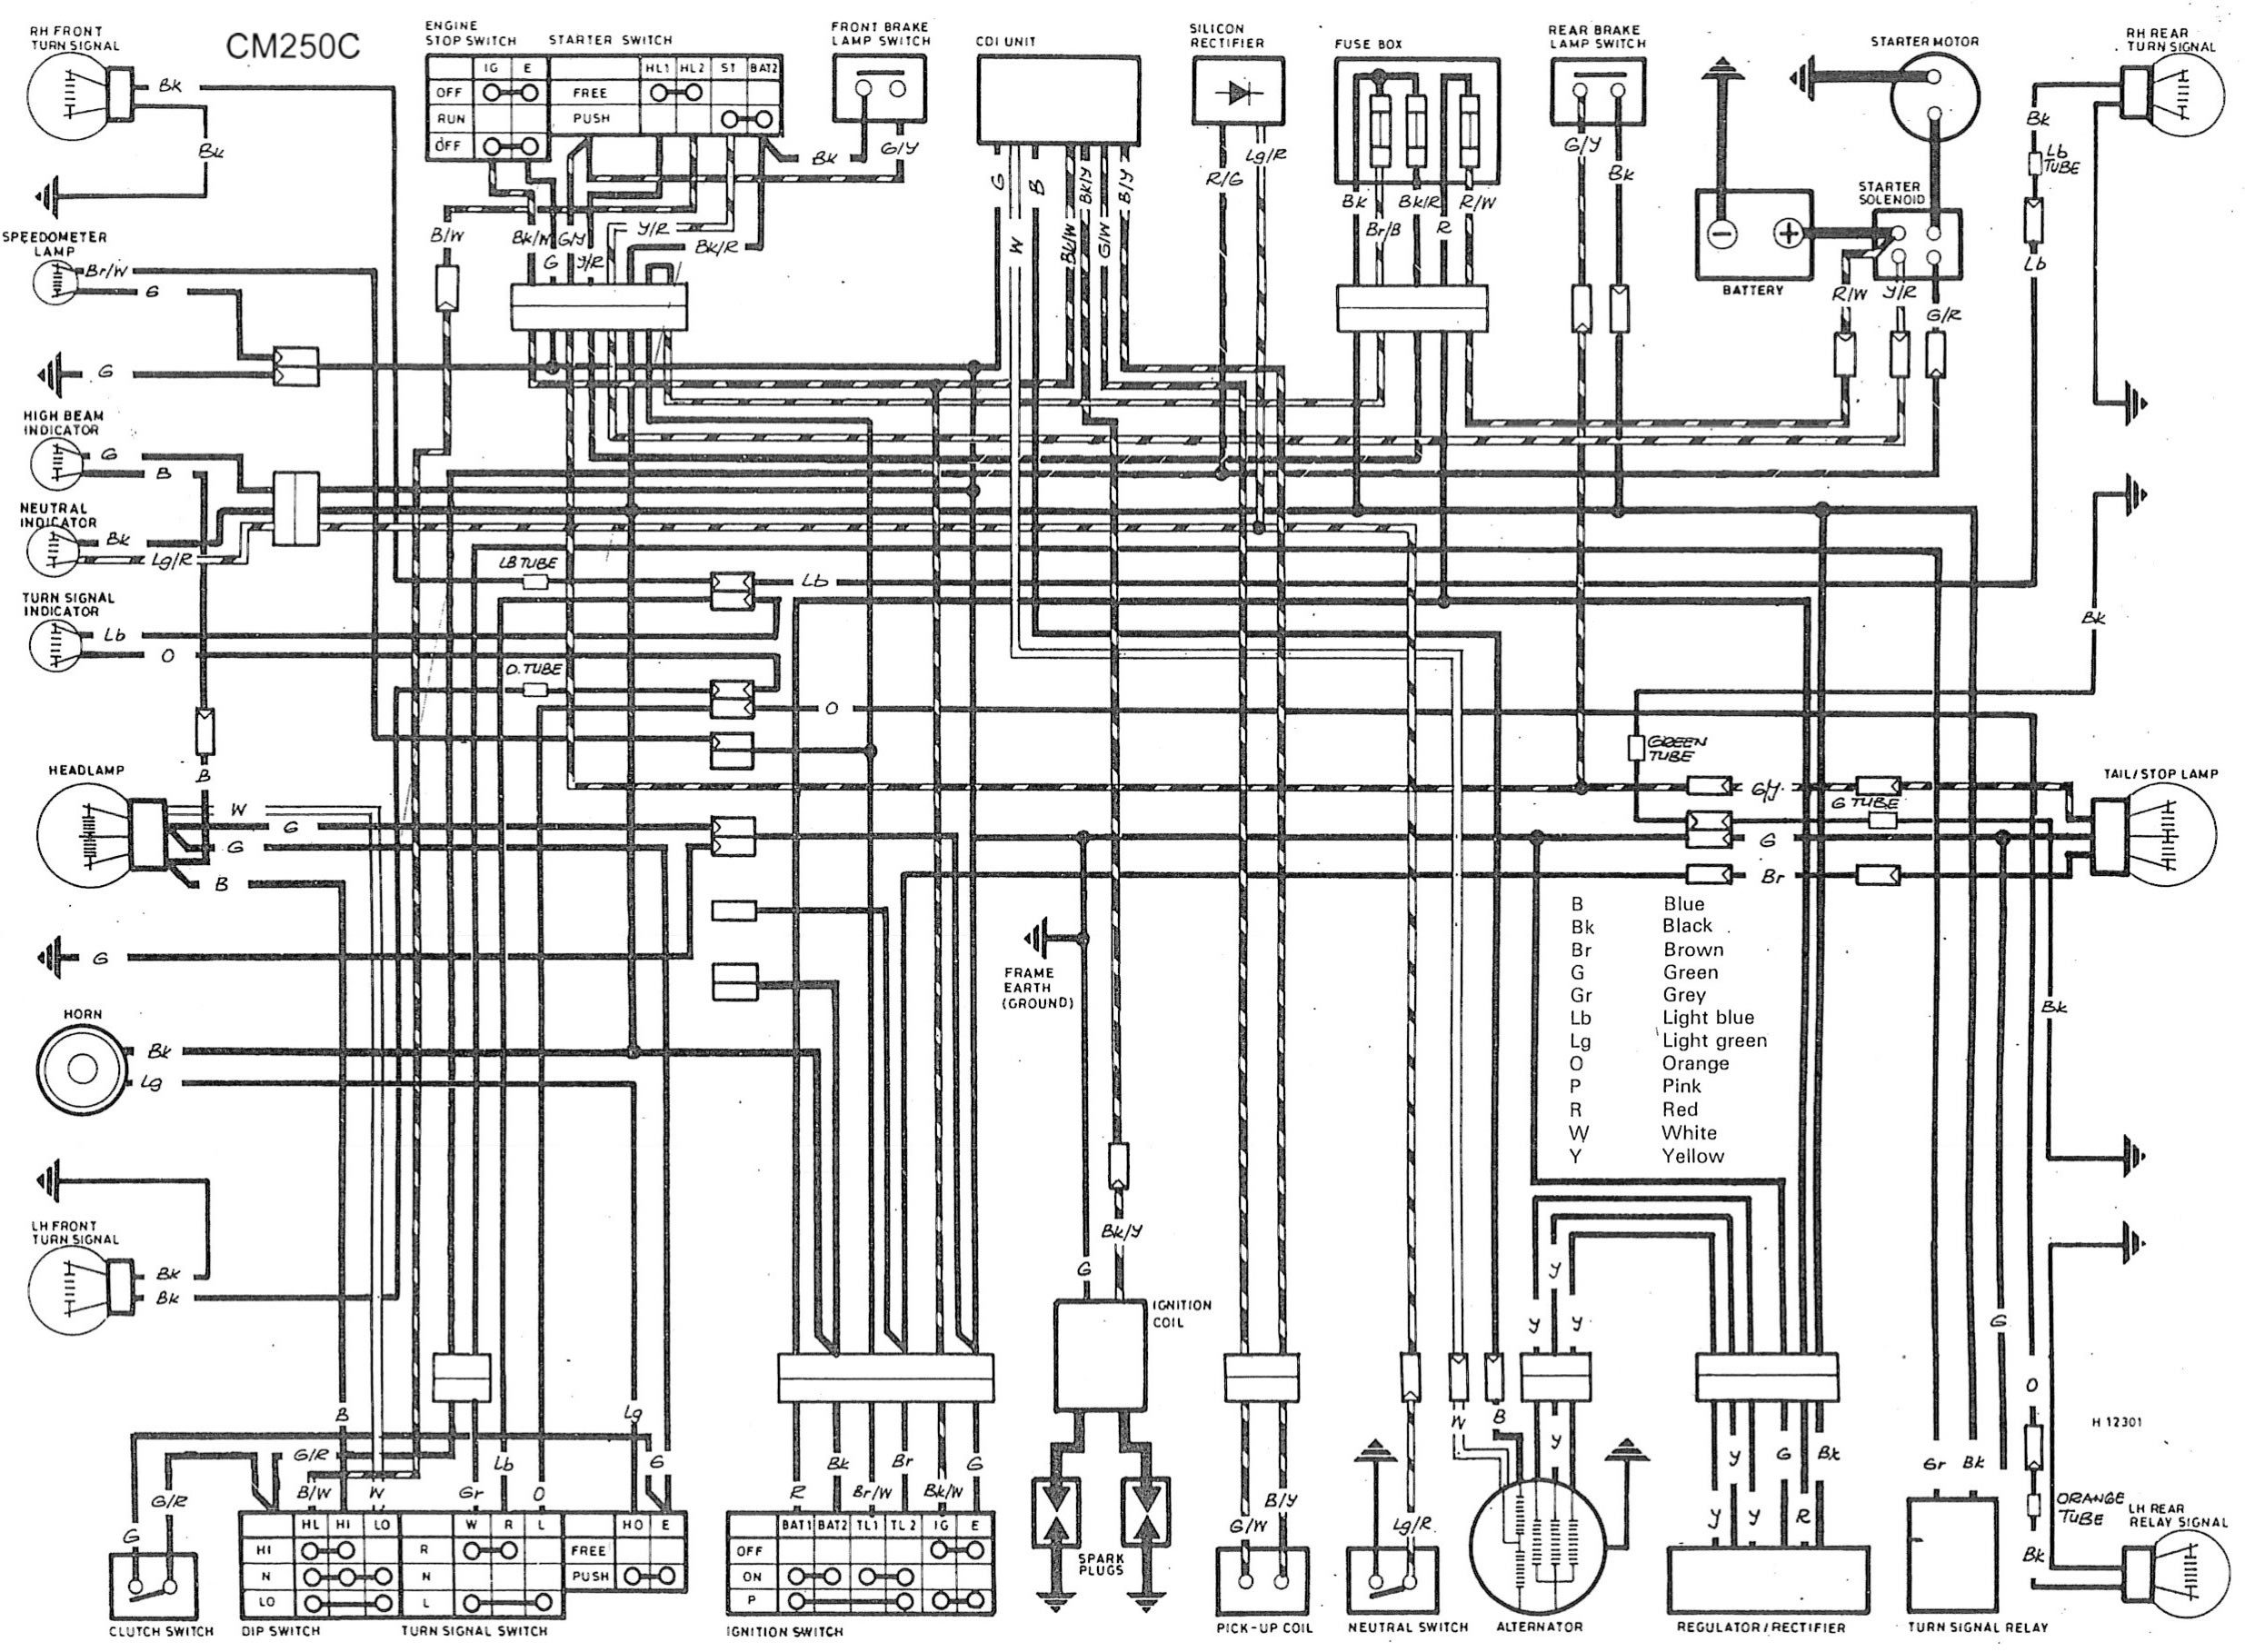 Honda Cb 250 Wiring Diagram Honda C90 Wiring Diagram - Printable ...